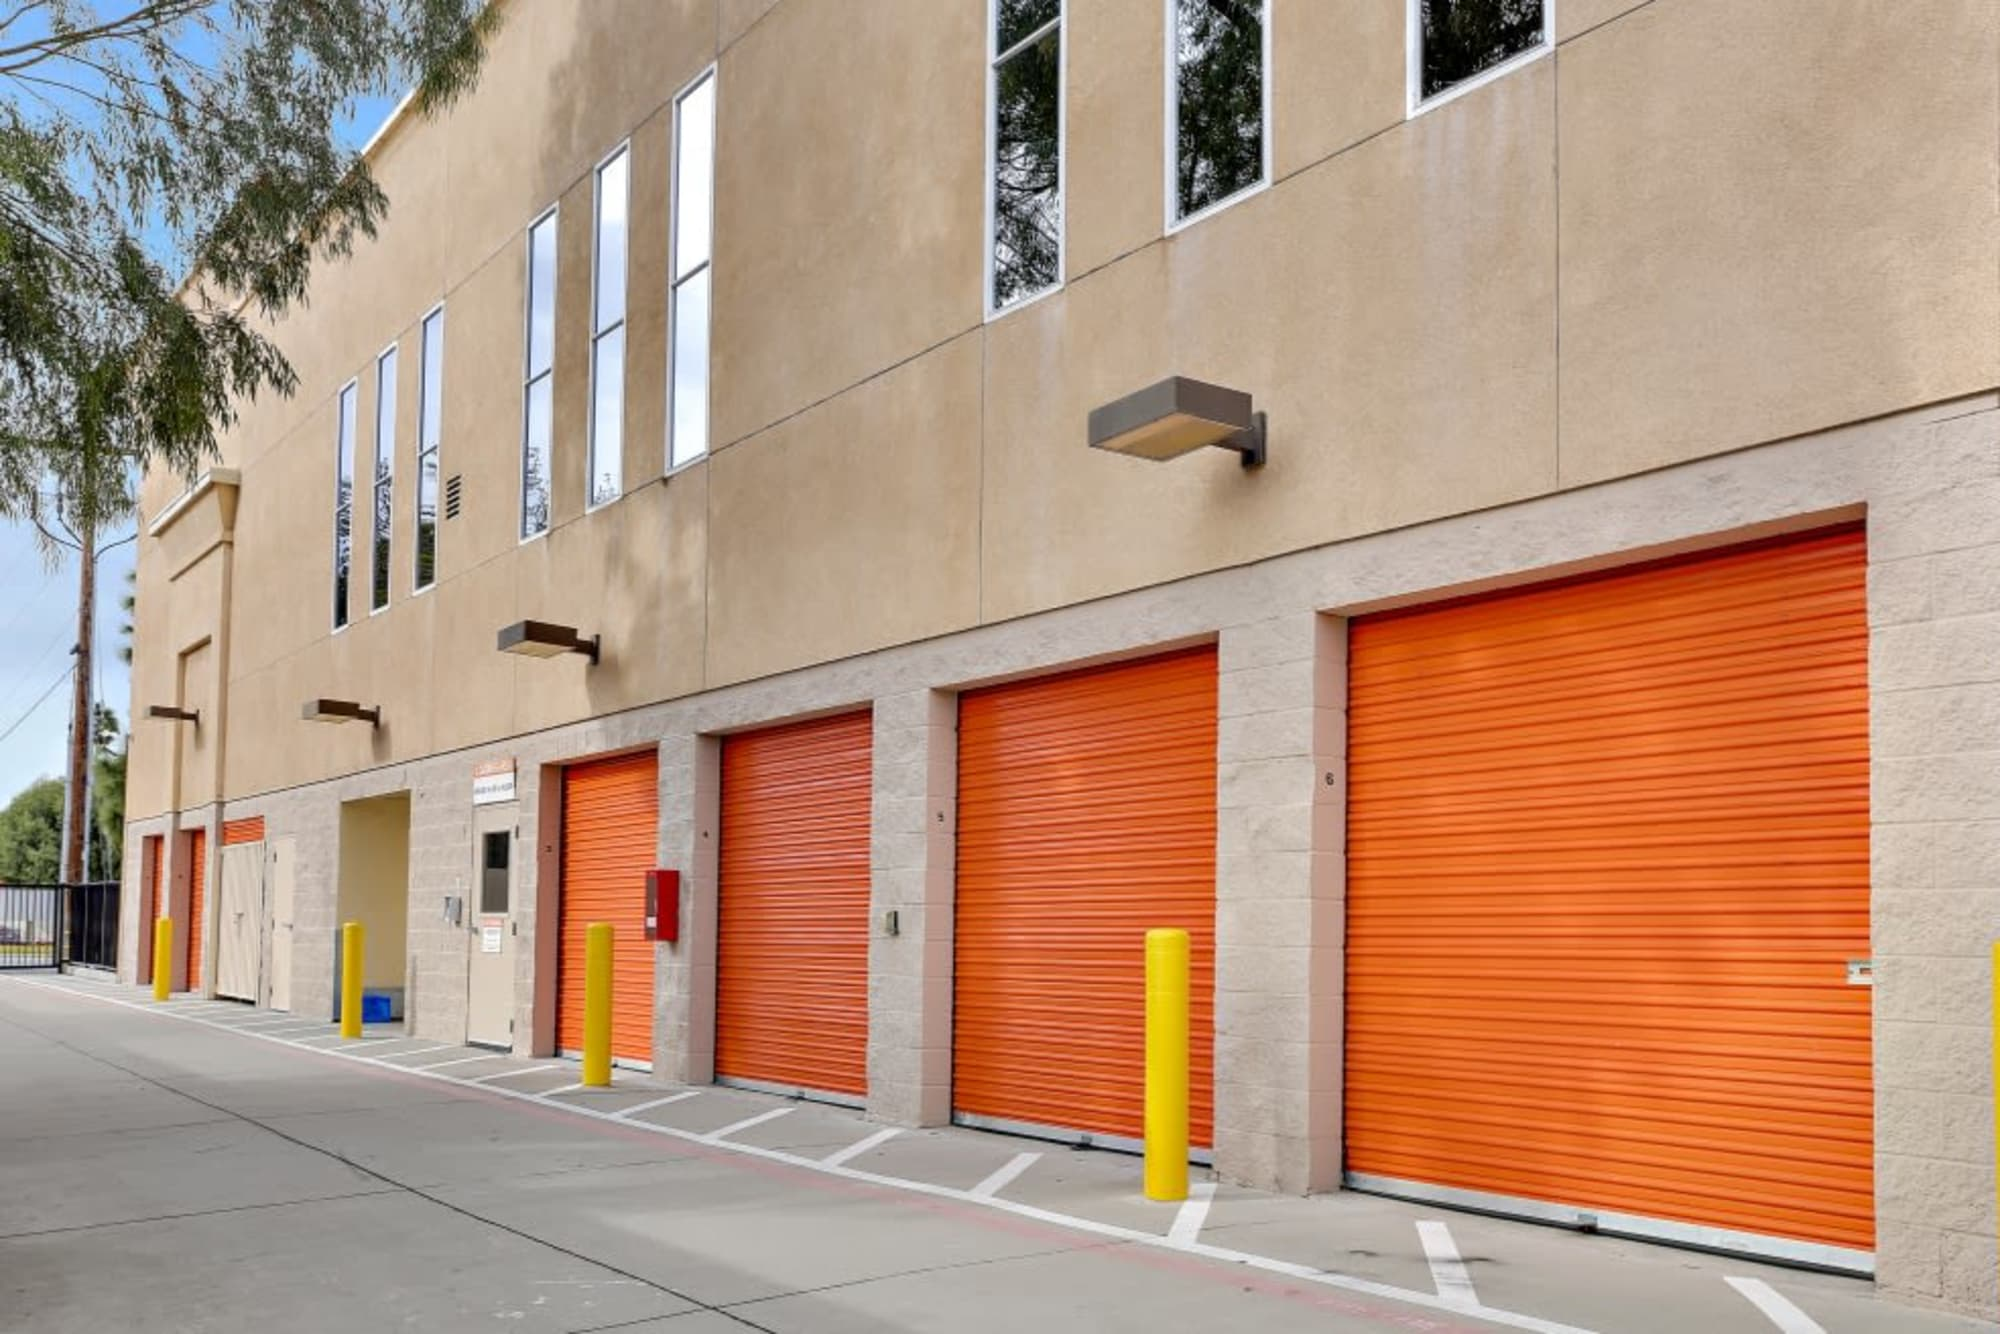 Large outdoor storage units at A-1 Self Storage in San Jose, California